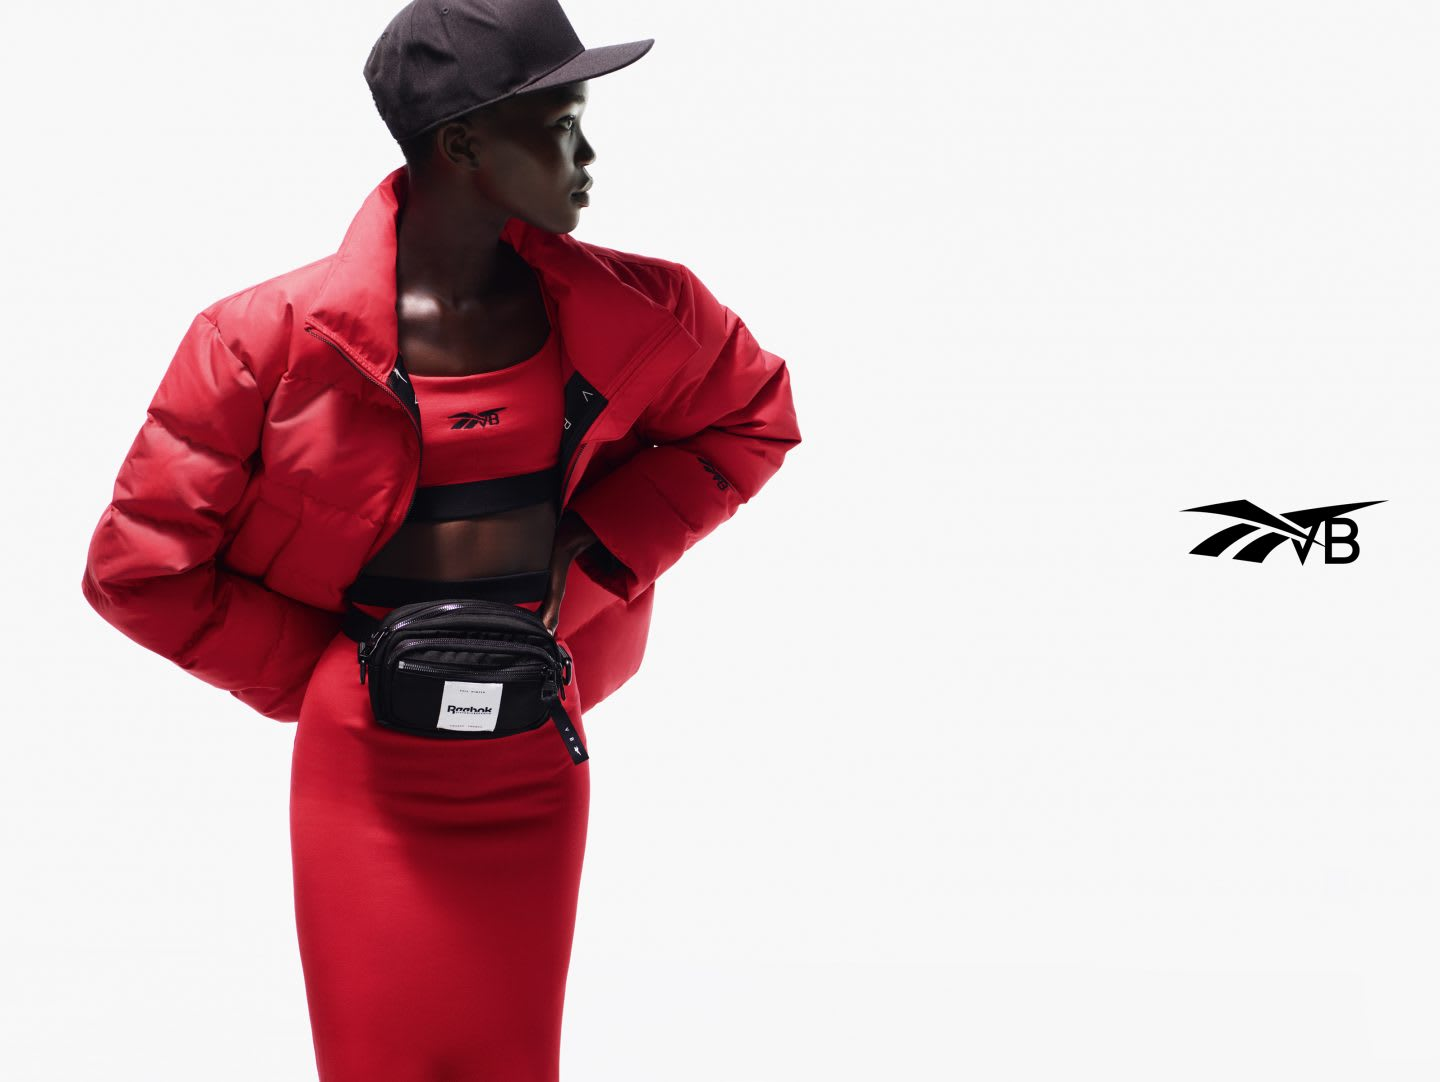 Black model wearing VB x Reebok red puffer jacket and skirt from streetwear collection, Victoria Beckham, Reebok, collaboration, fashion